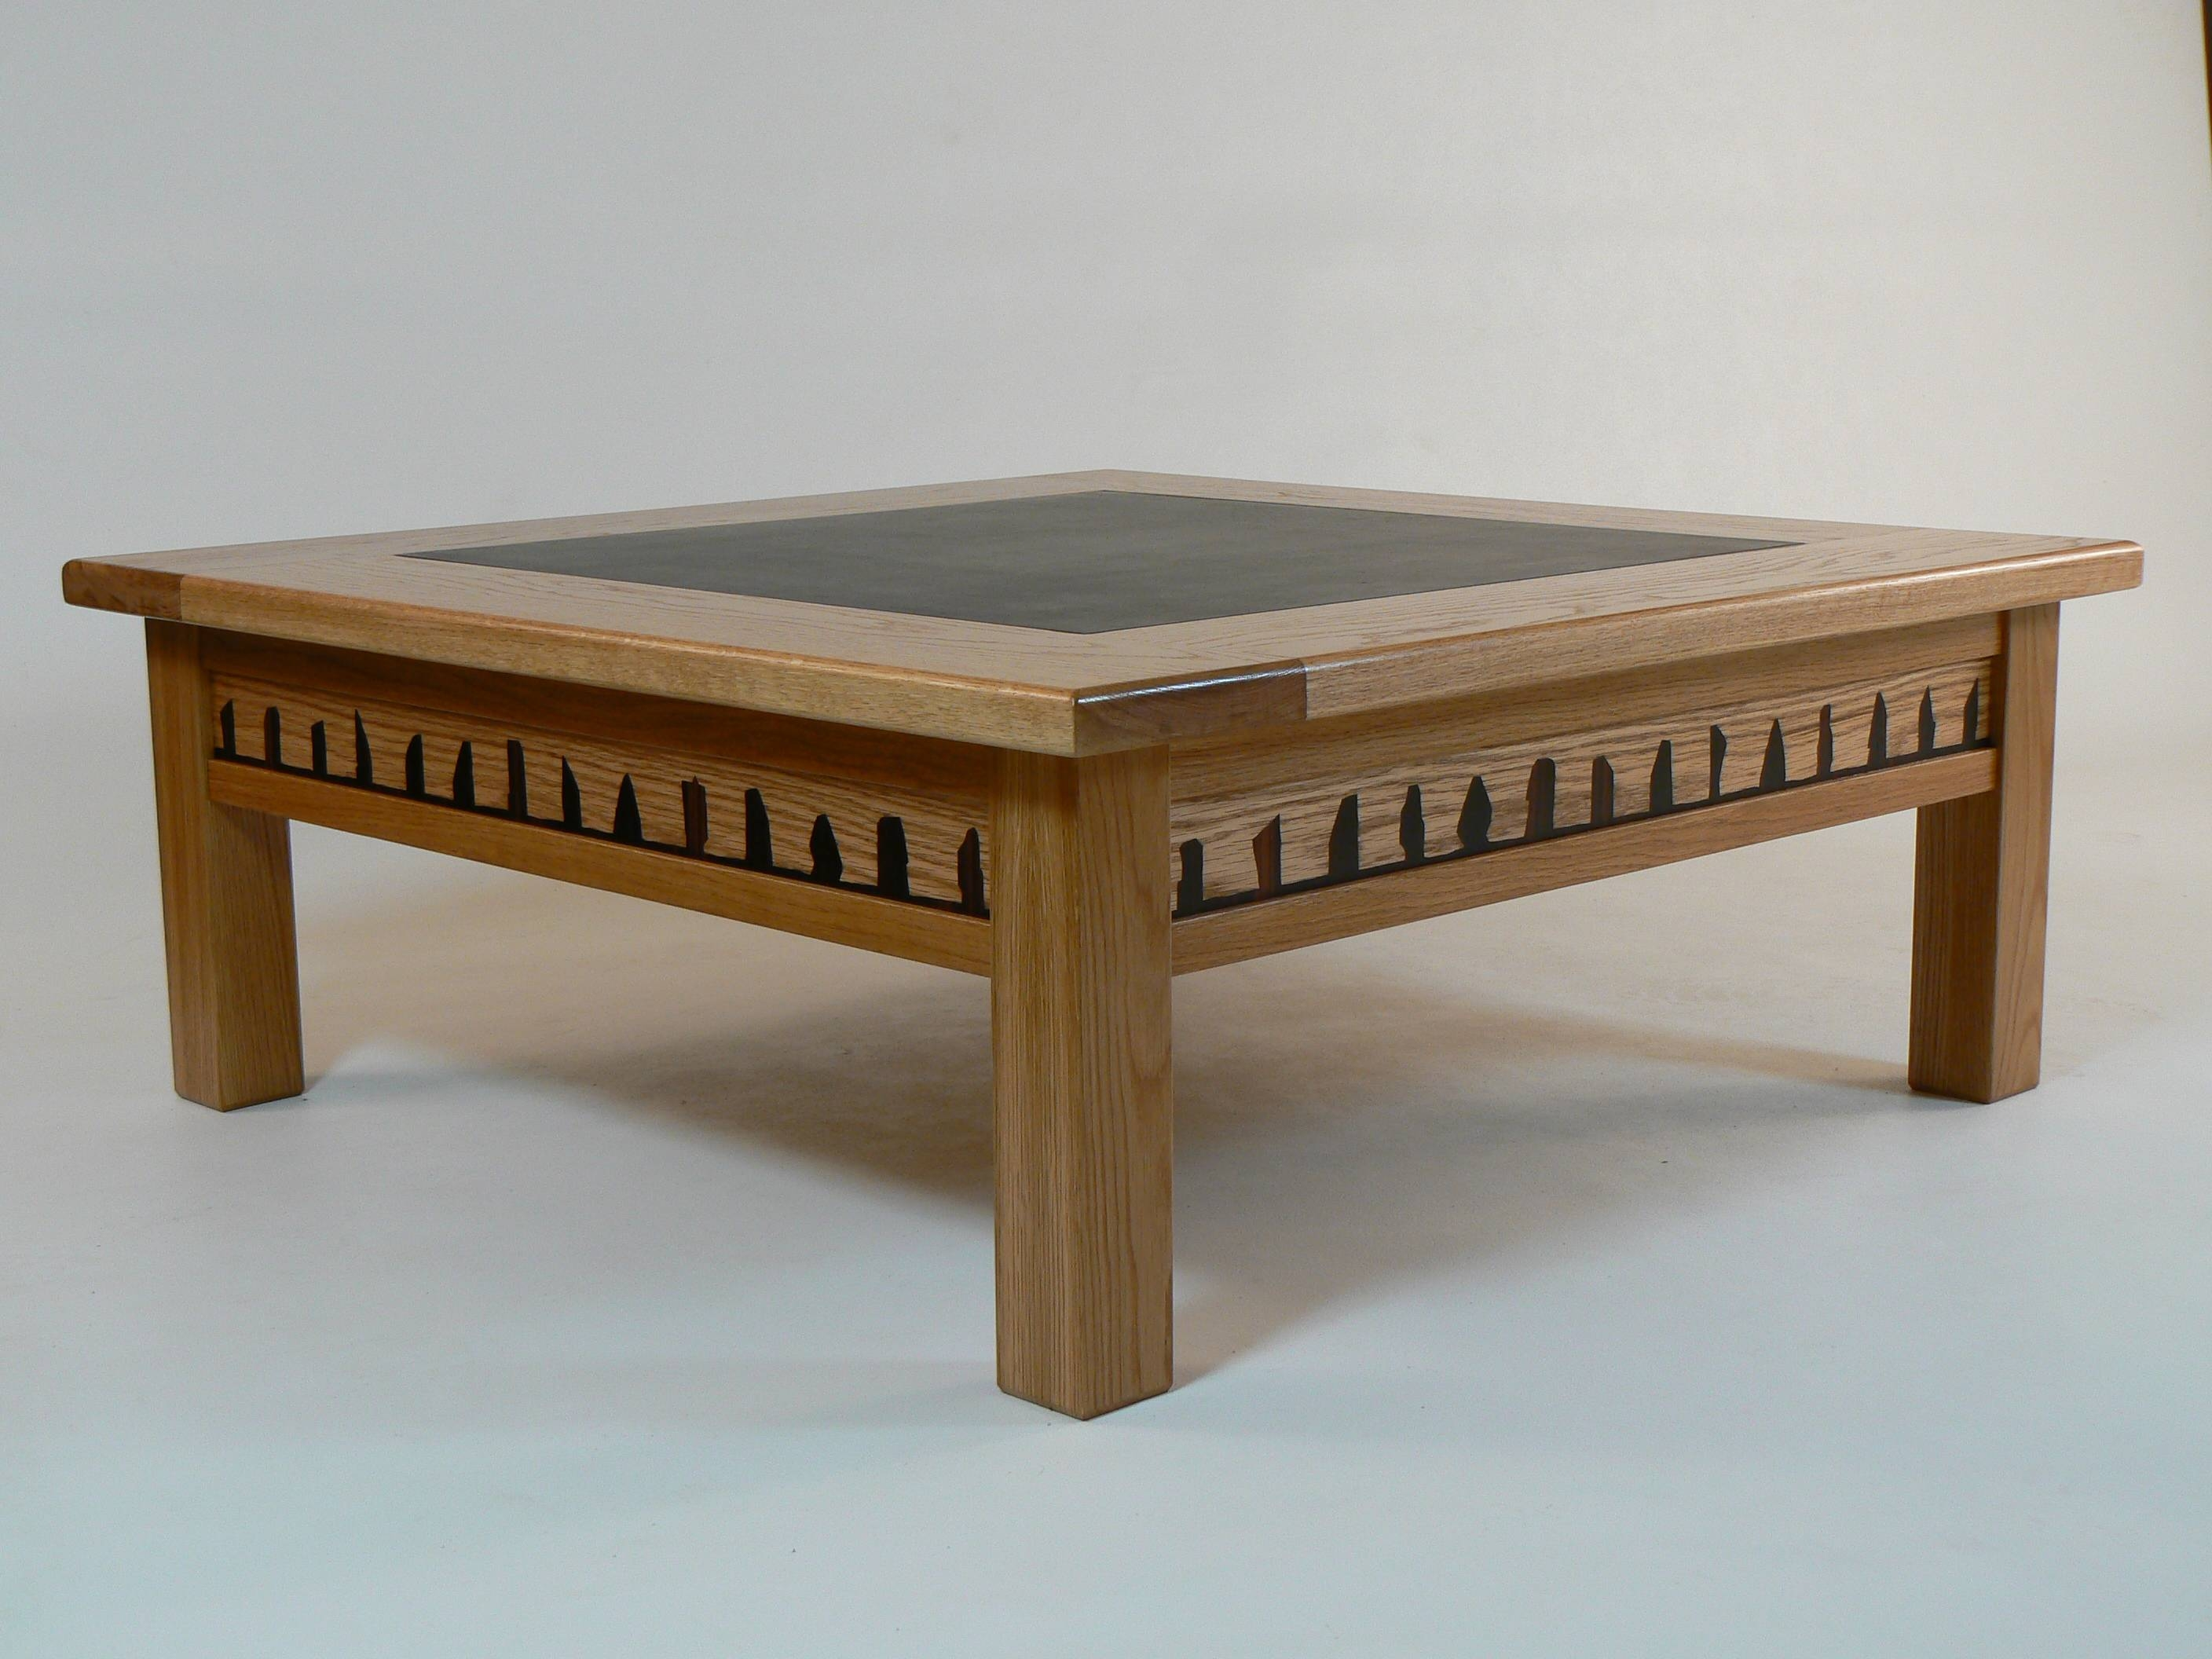 Square Oak Coffee Table With Glass Top | Coffee Tables Decoration regarding Glass Coffee Tables With Storage (Image 29 of 30)